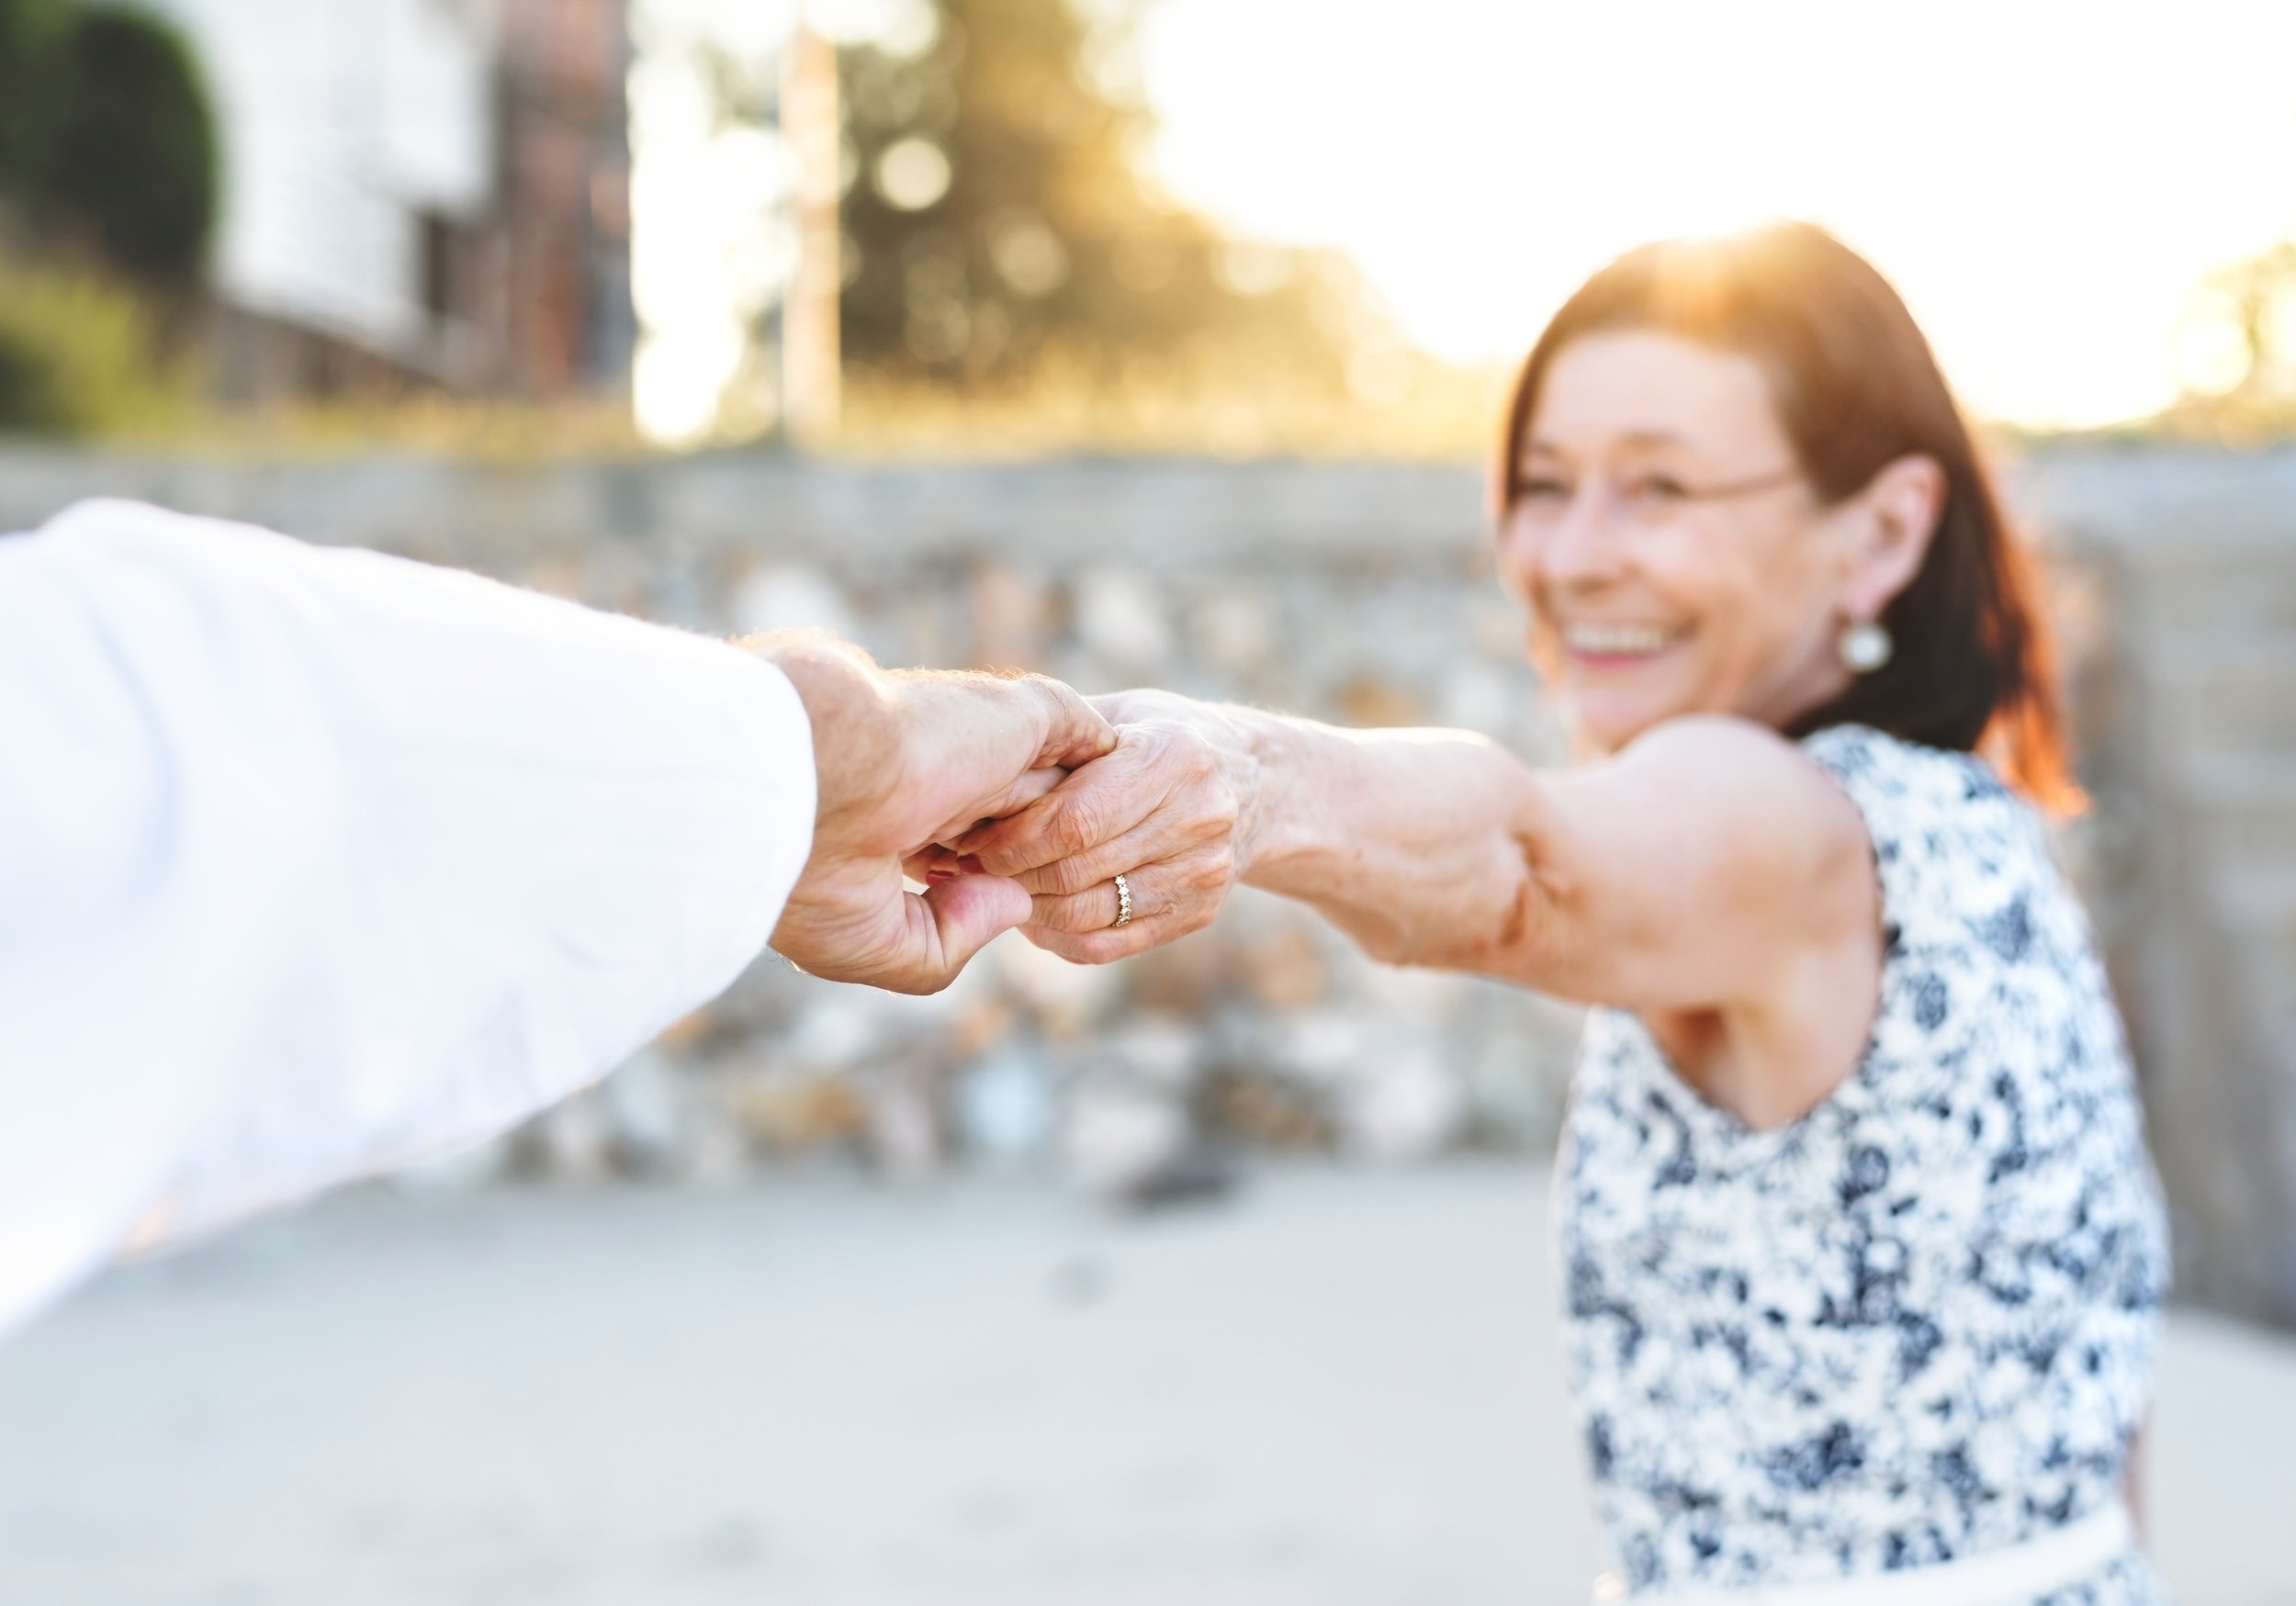 Putting the heart back in cardiac rehab - Women tend to have lower participation rates in cardiac rehab programs and suffer from lower health outcomes. As the fastest growing demographic for heart disease, we wanted to get women connected to their health.